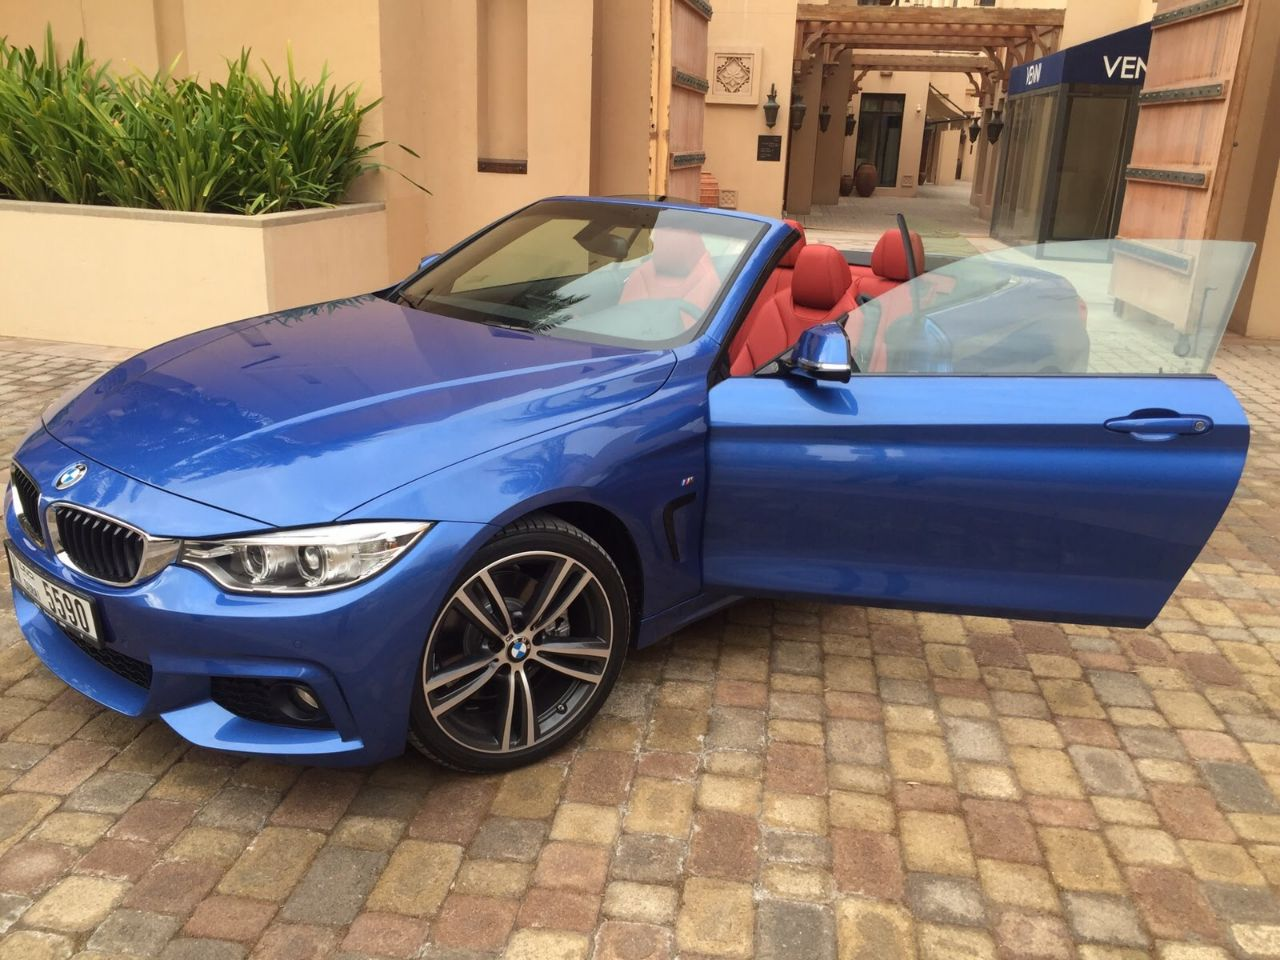 BMW 428 1<a href=default.asp?pid=29&catid=3&scatid=0  ><font color:#000>BOOK NOW</font></a>